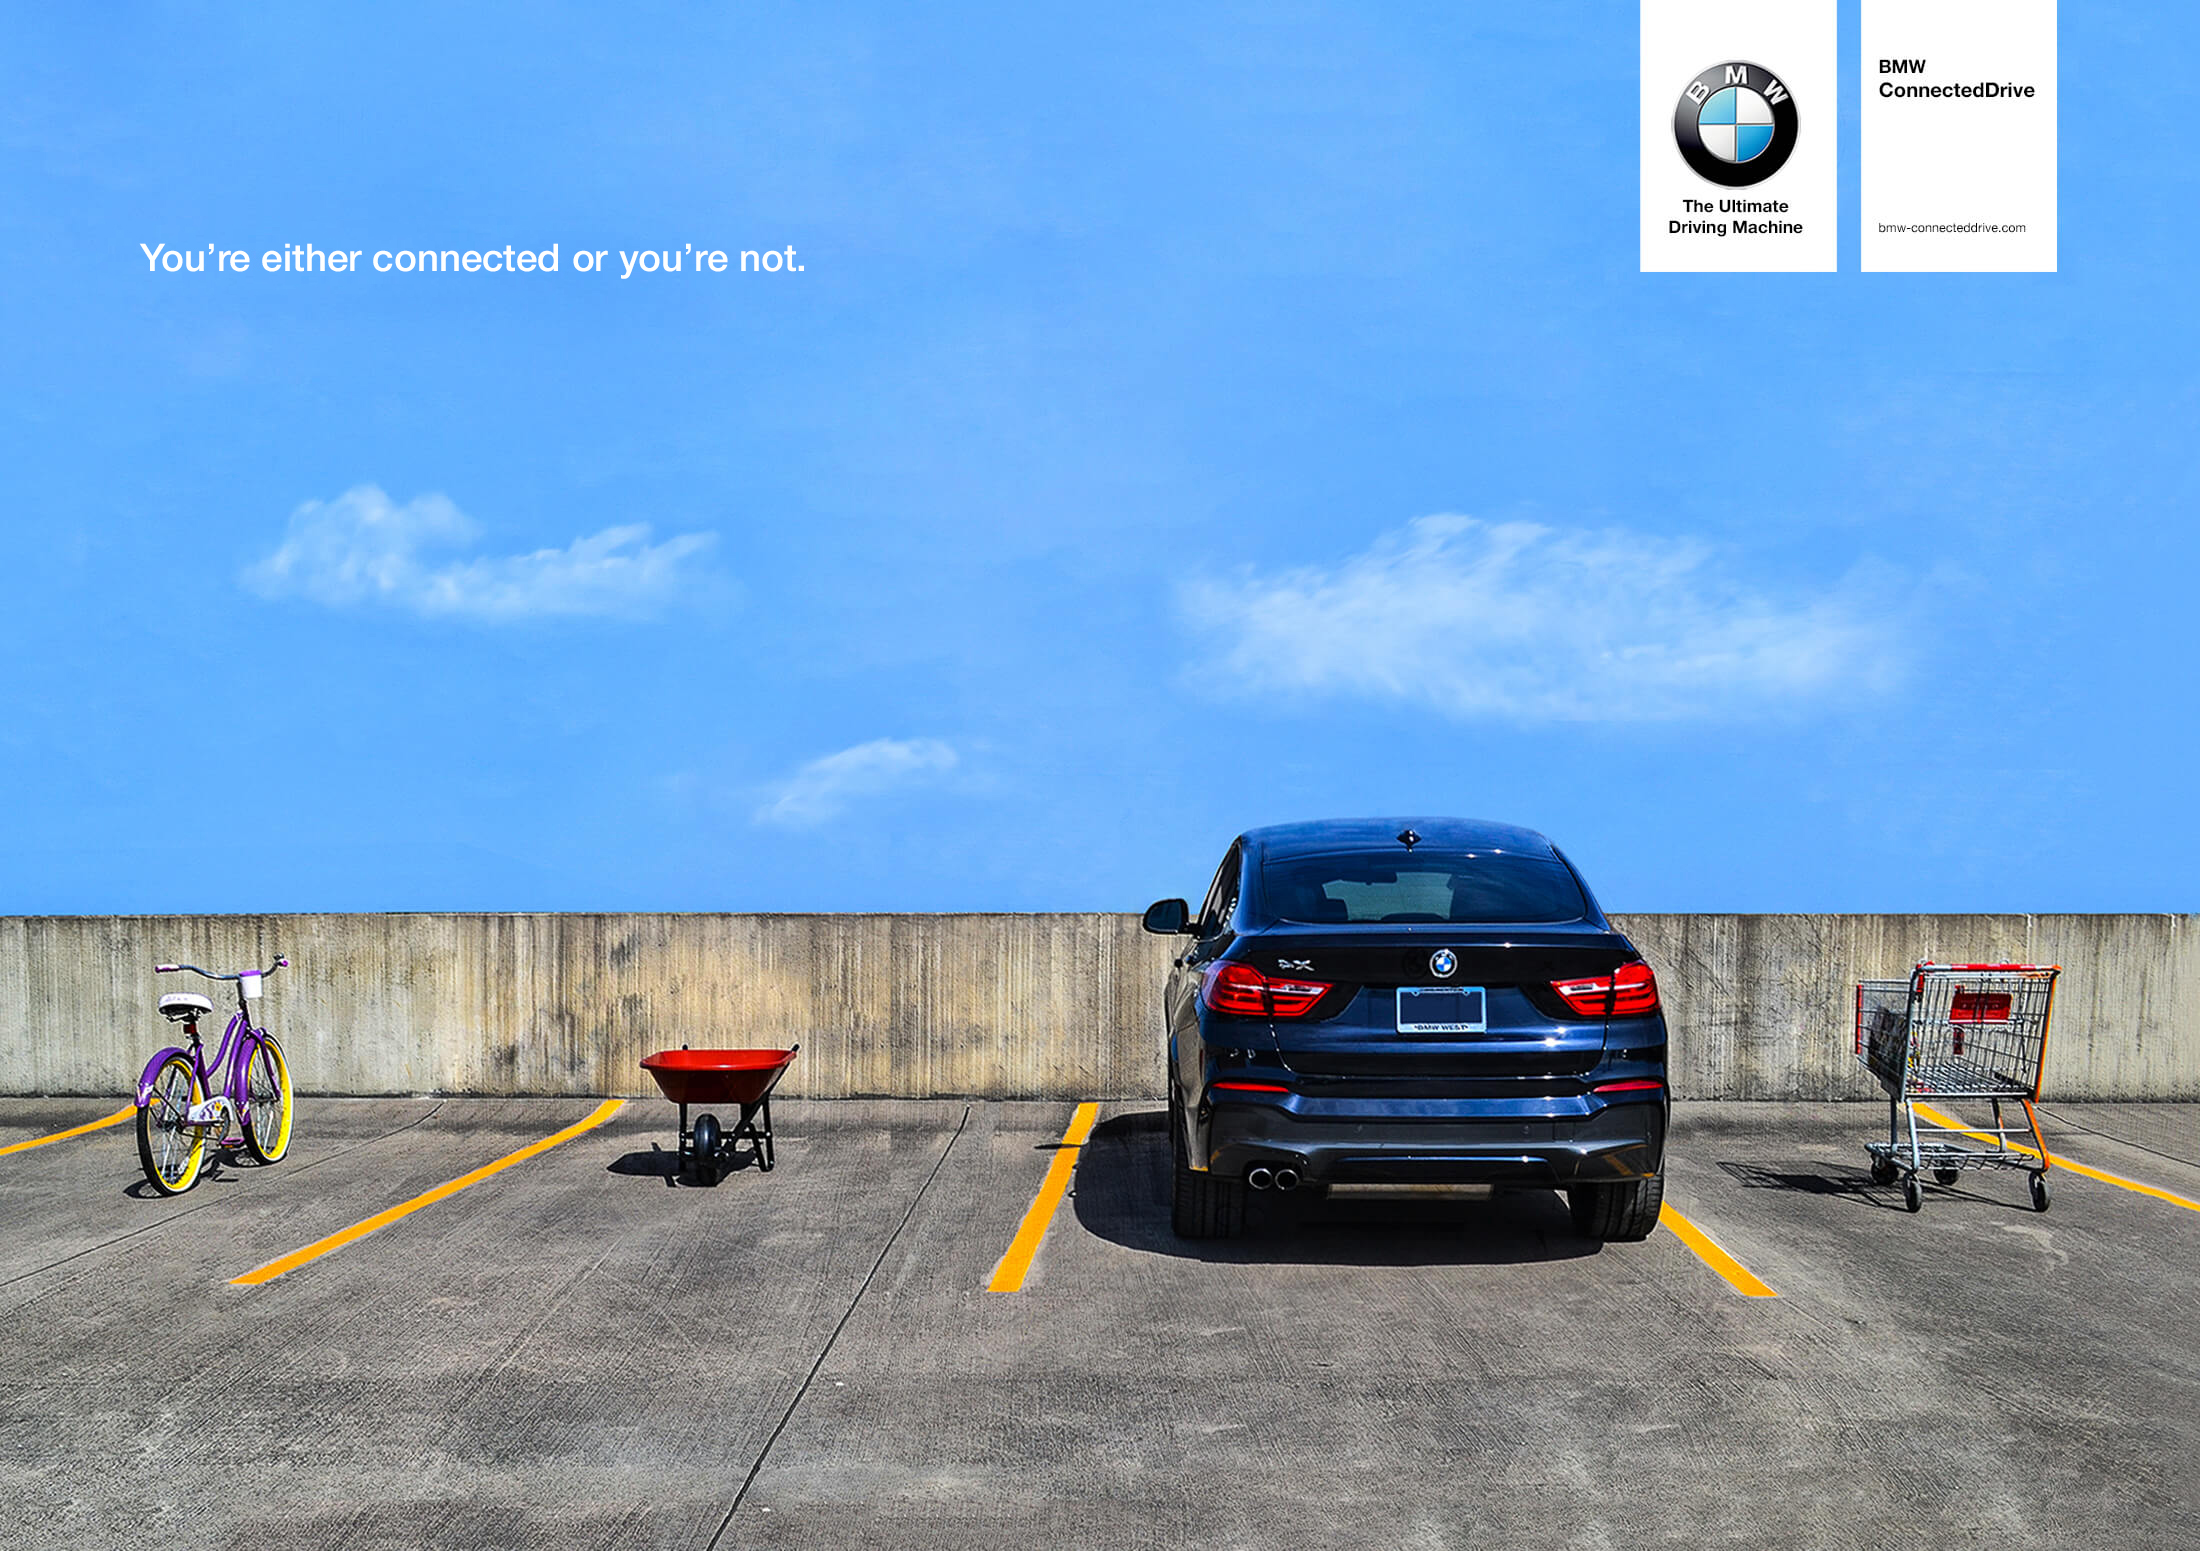 BMW Is it Driving-vFINALa-Recovered v10.jpg